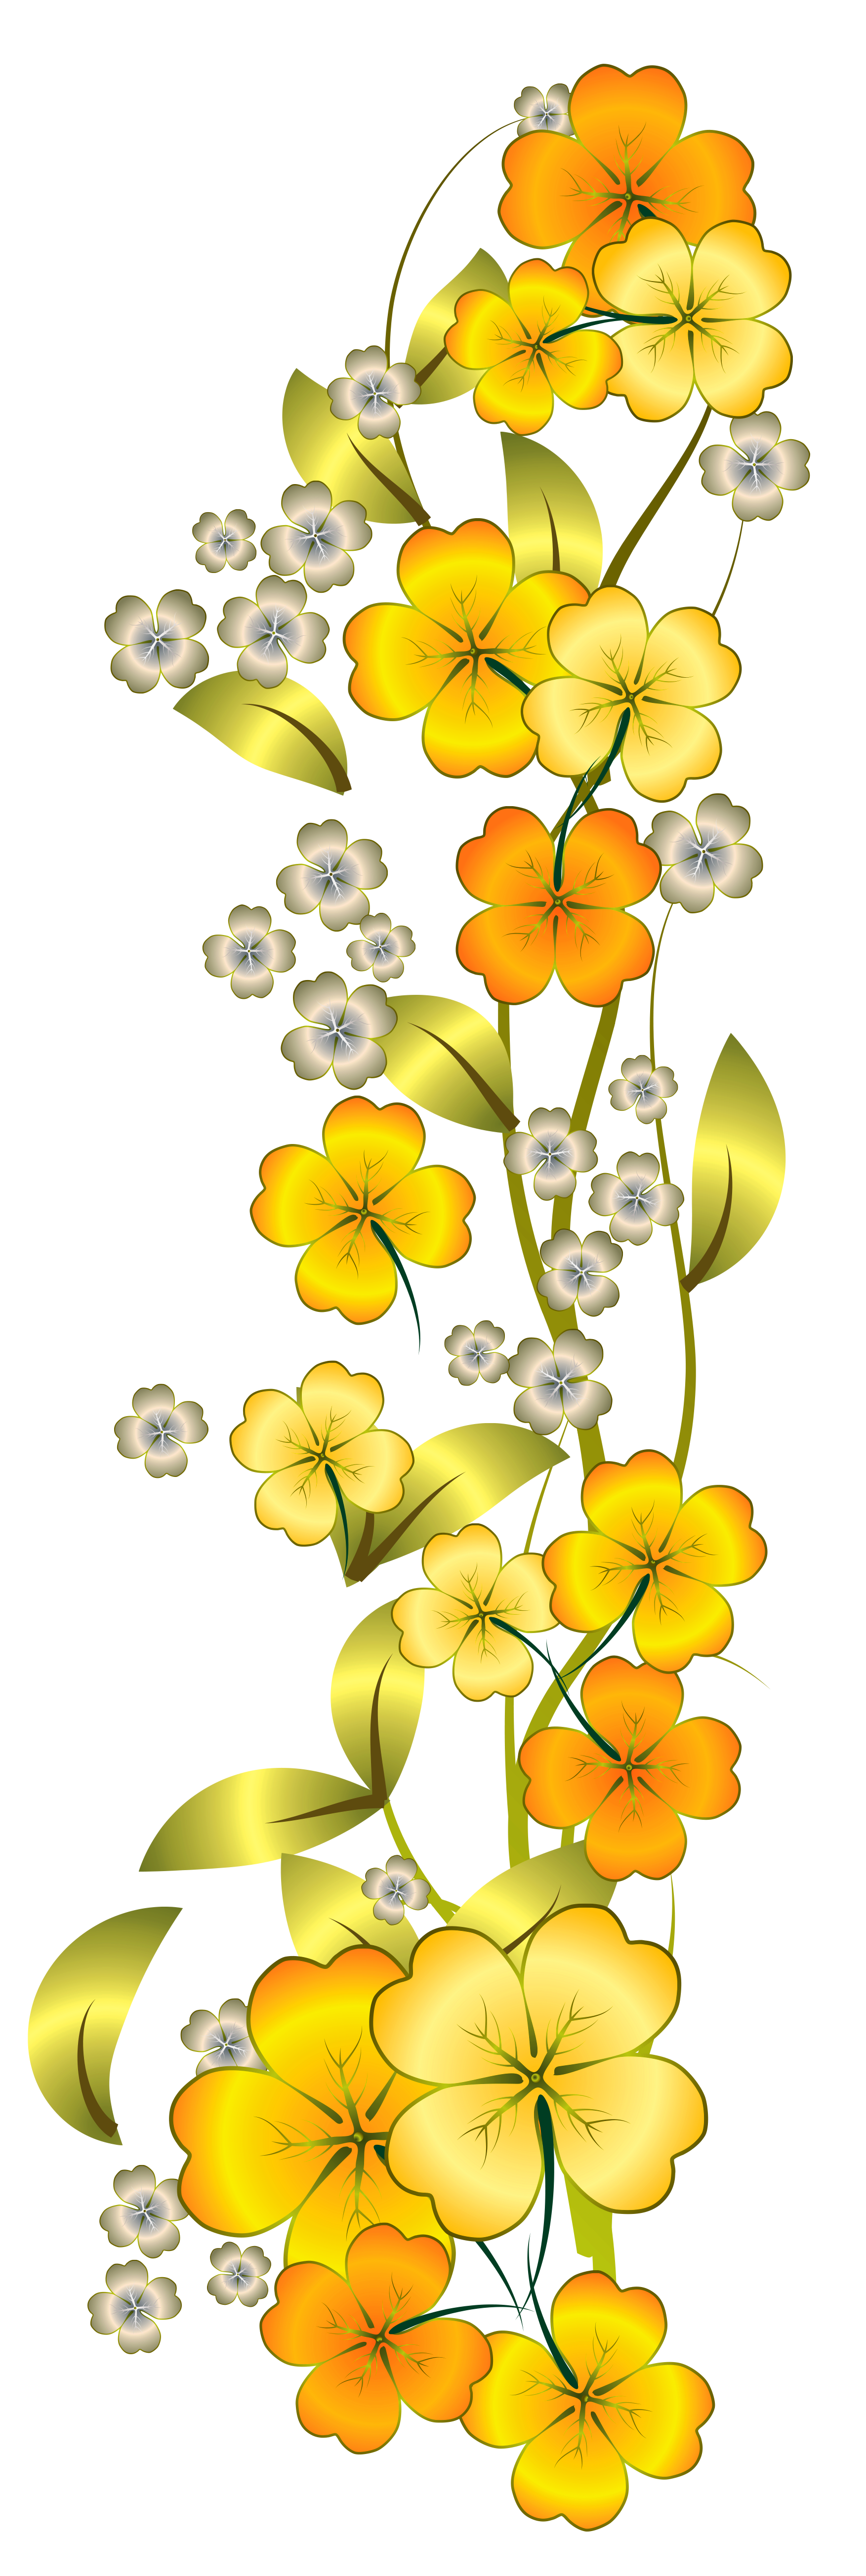 Yellow watercolor stitched flowers clipart picture royalty free Pin by Best Fiends on Best Fiends Themed DECOR! | Yellow ... picture royalty free